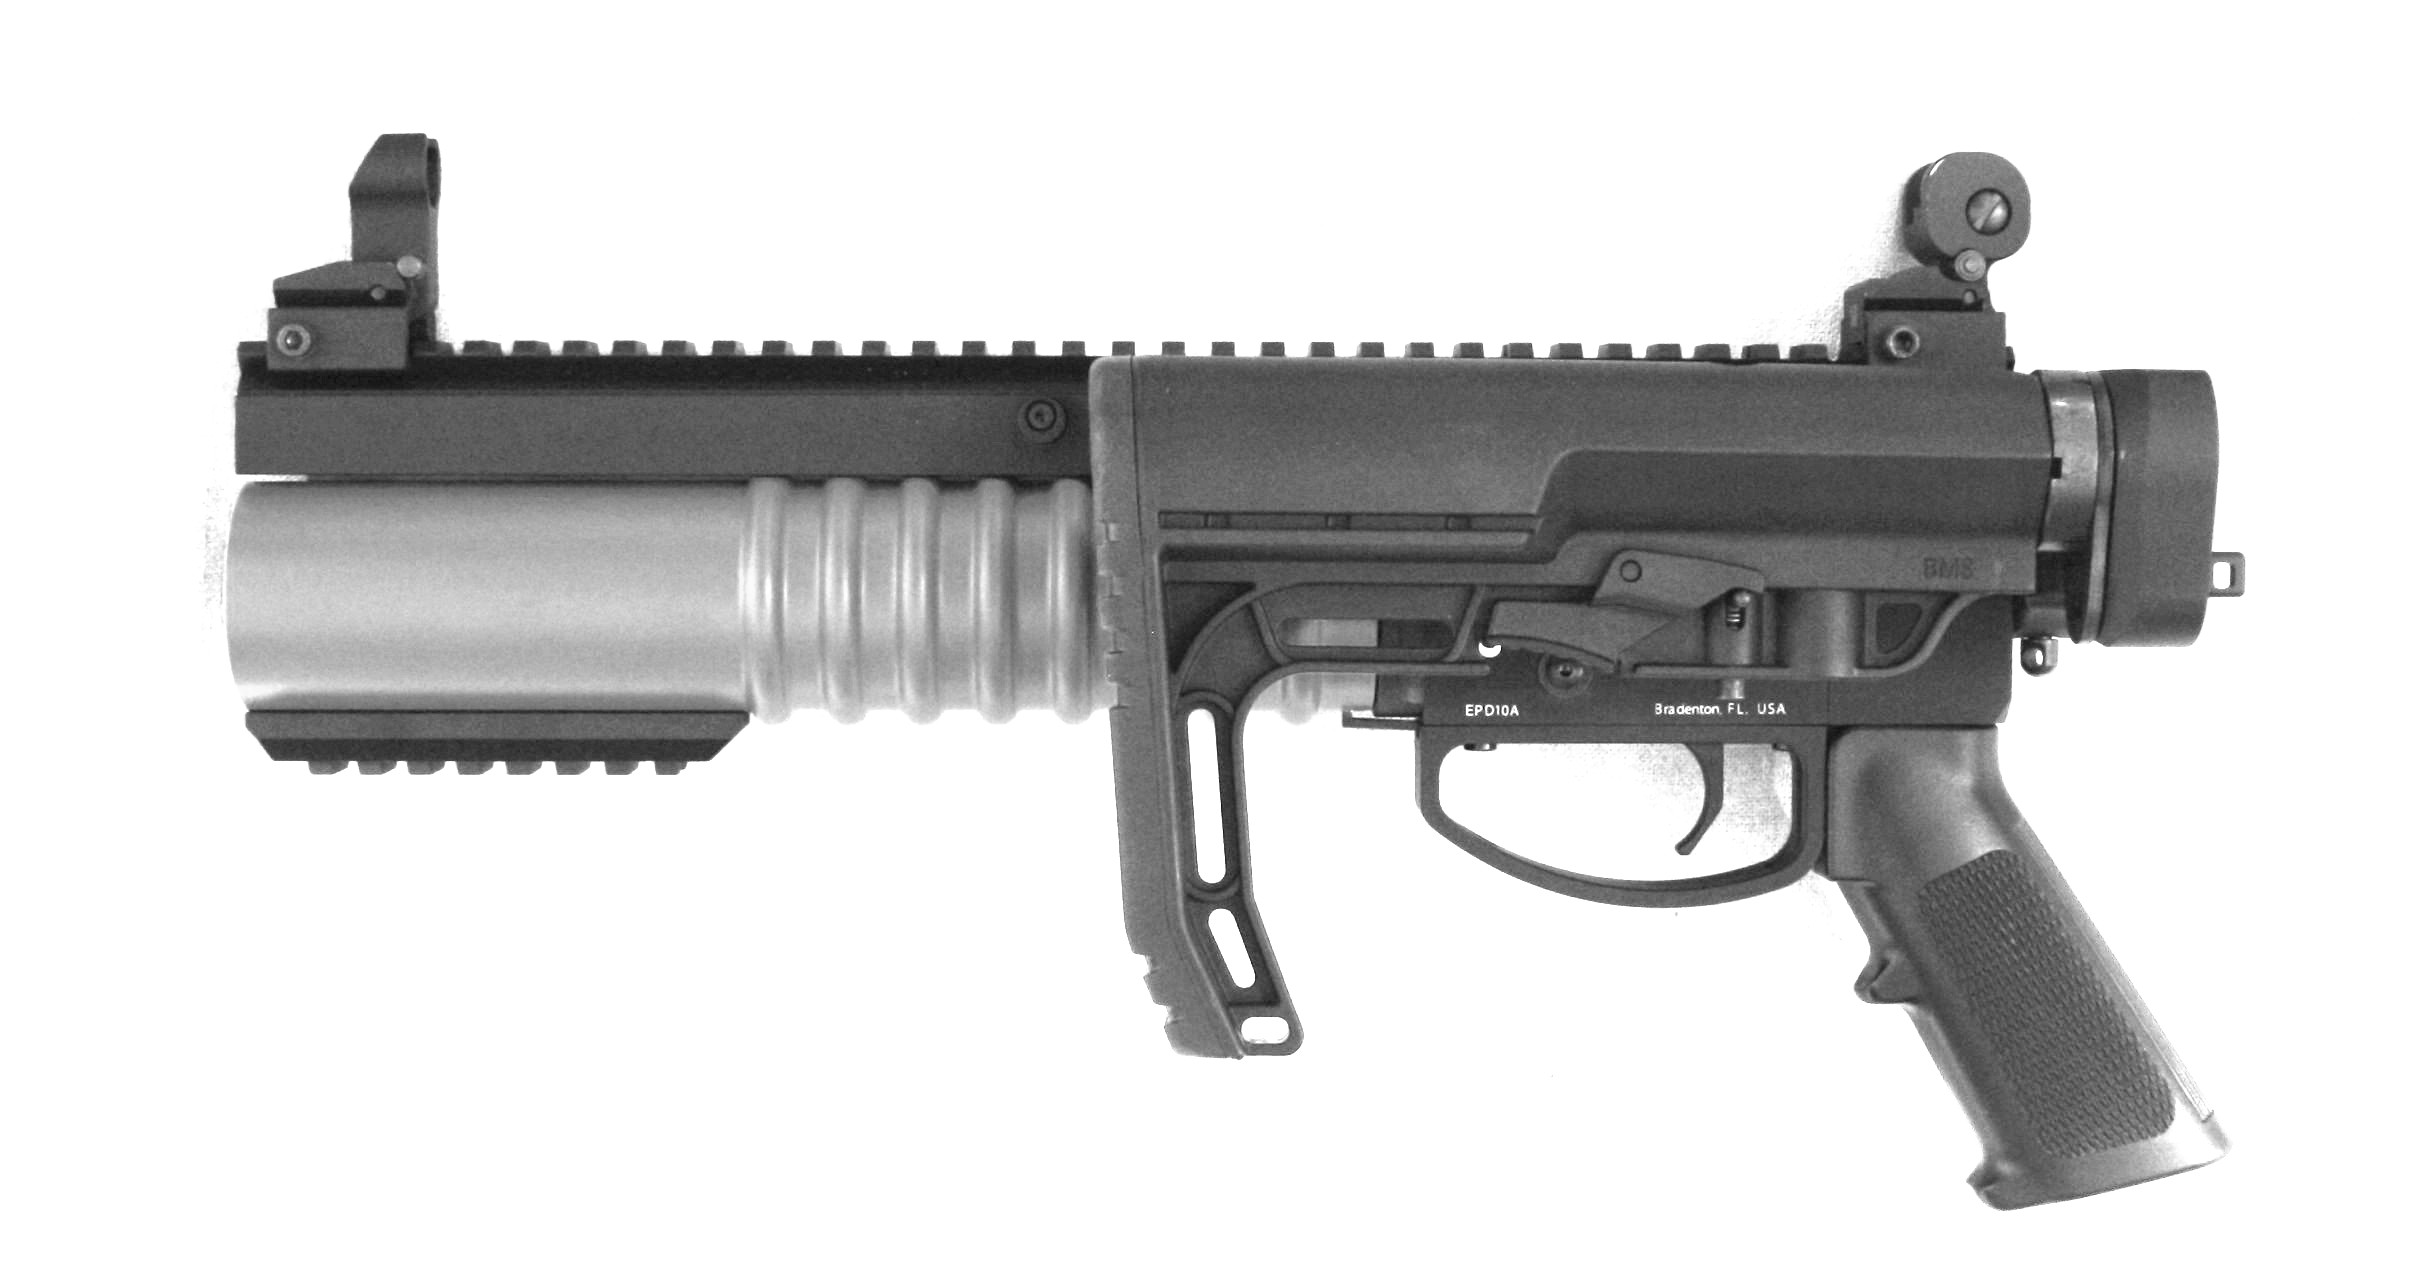 Tad-D with folded stock